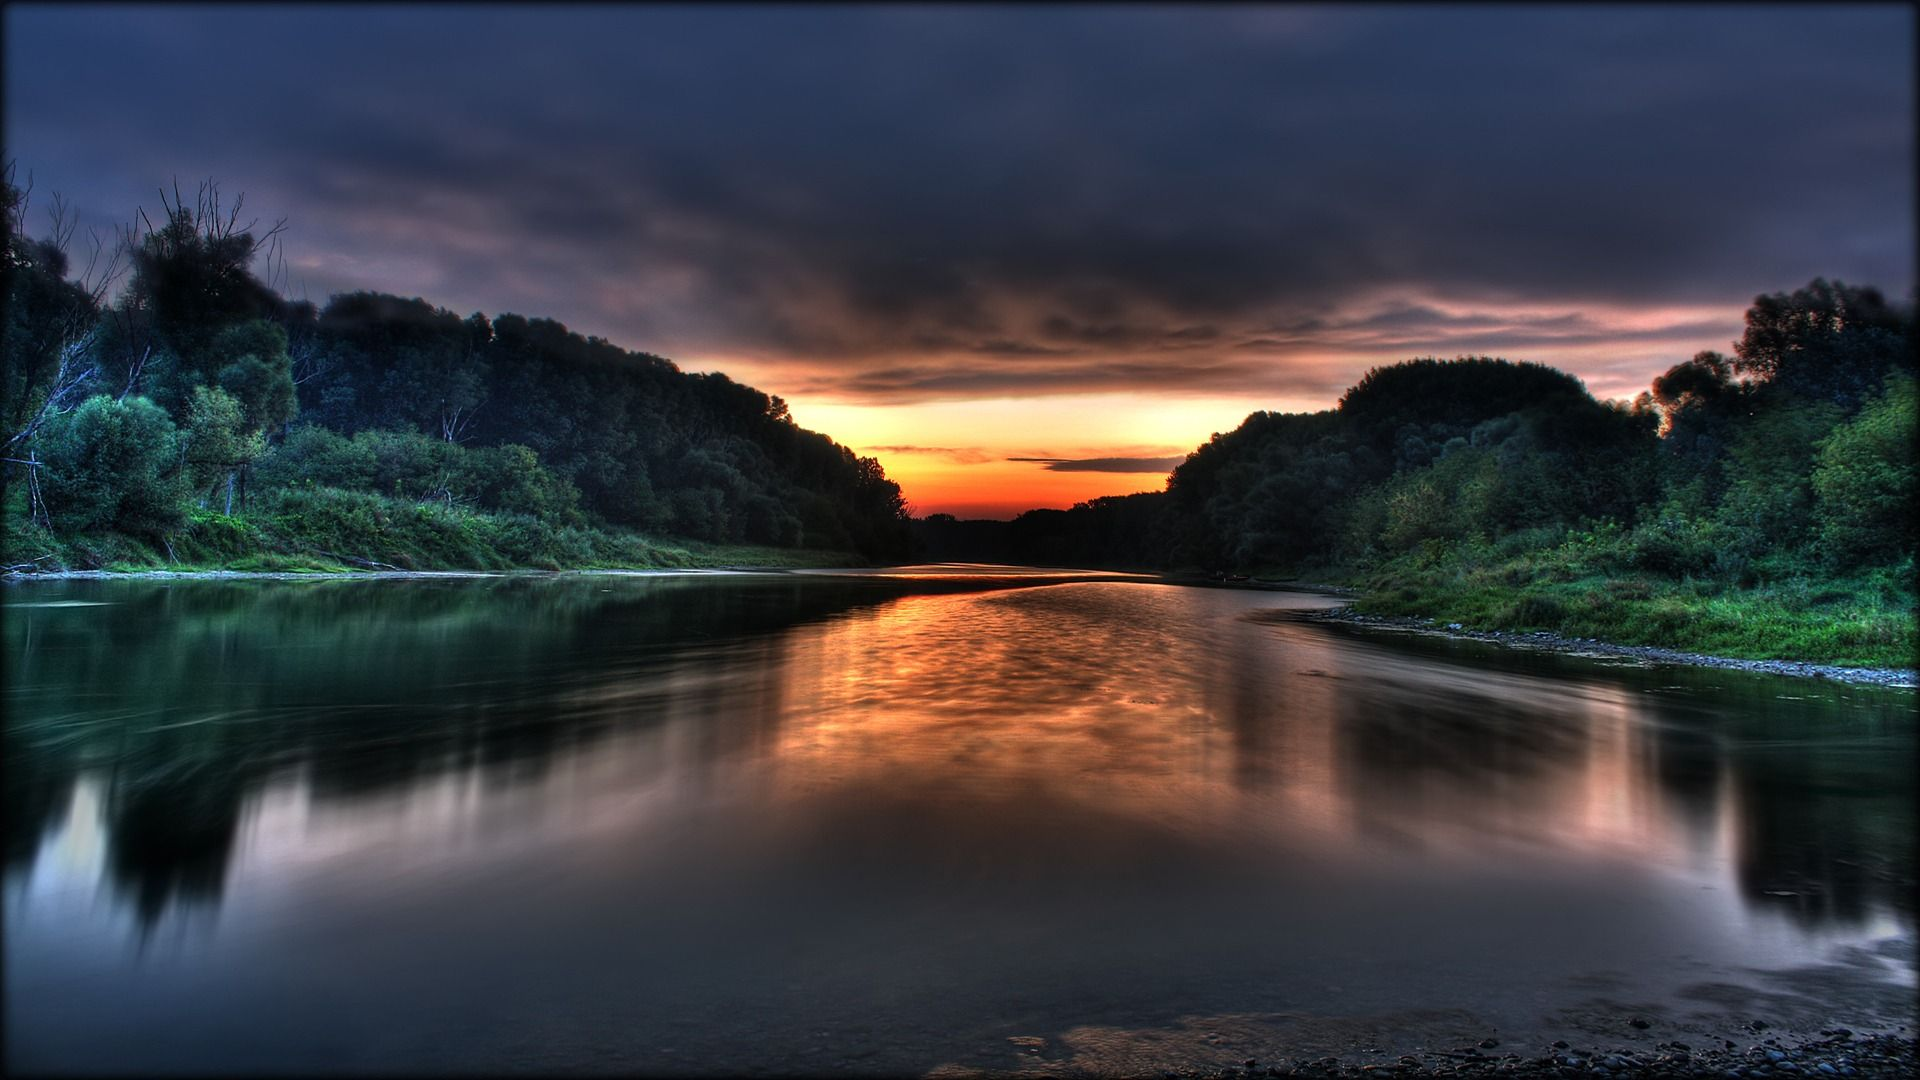 hd wallpapers widescreen 1080p 3d | donau sunrise 1080p hdtv